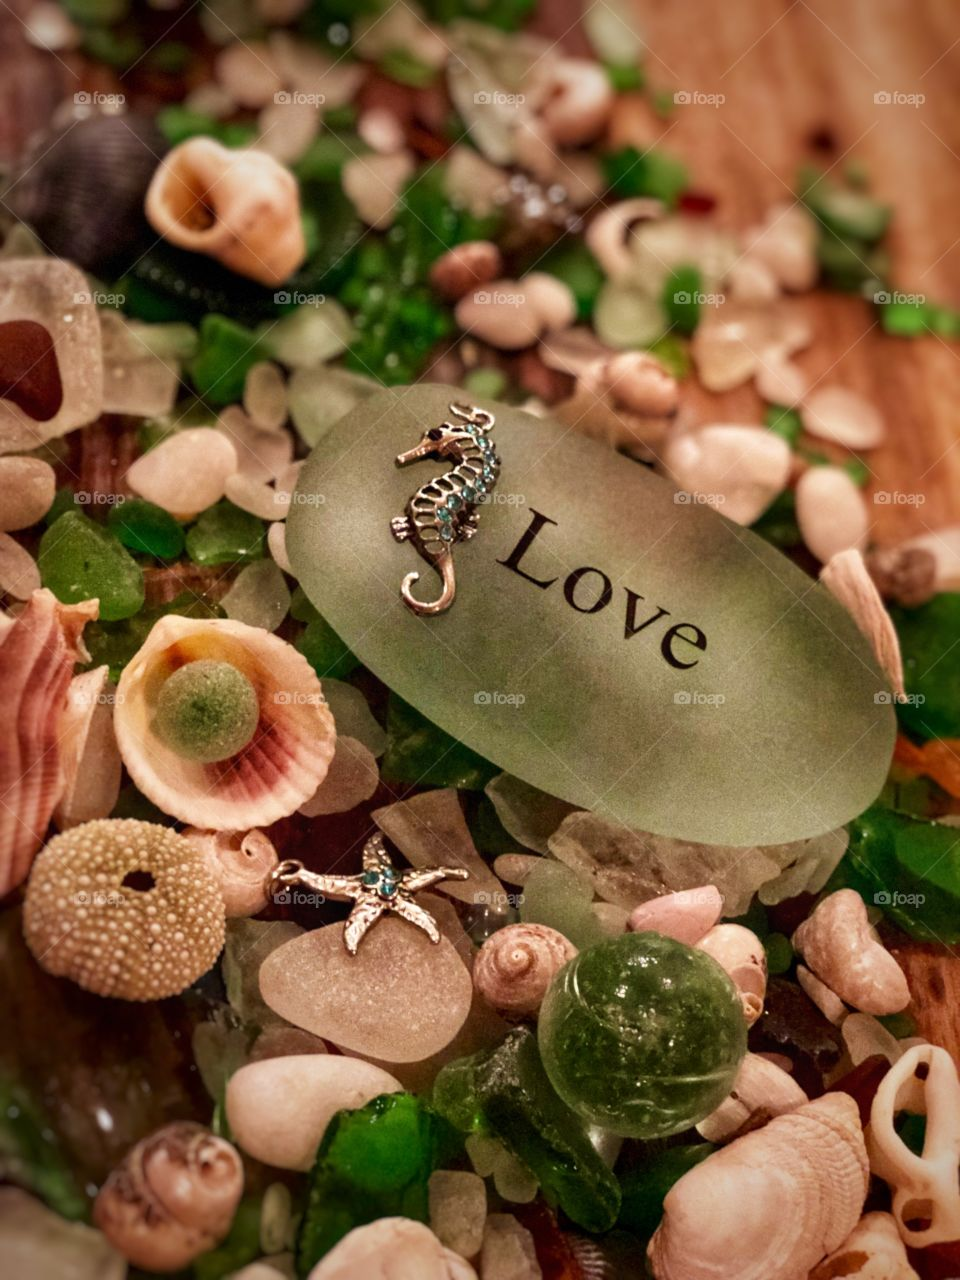 Stunningly Beautiful all Natural Hand Picked Beach and Sea Glass ! Perfect Canvas Art, Screensavers and Desktop.